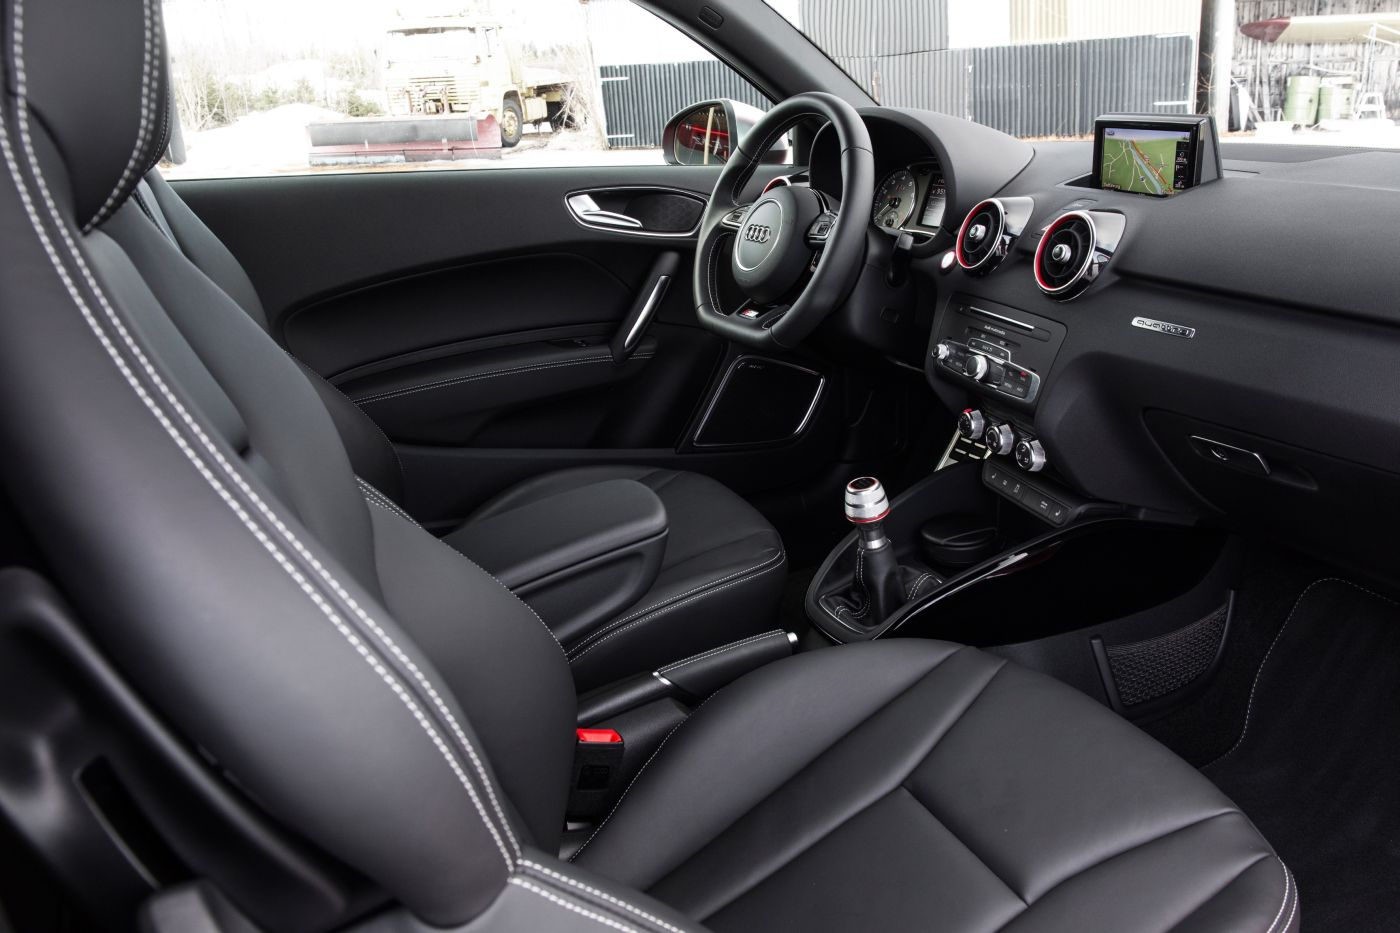 audi s1 test erster fahrbericht autogef hl. Black Bedroom Furniture Sets. Home Design Ideas